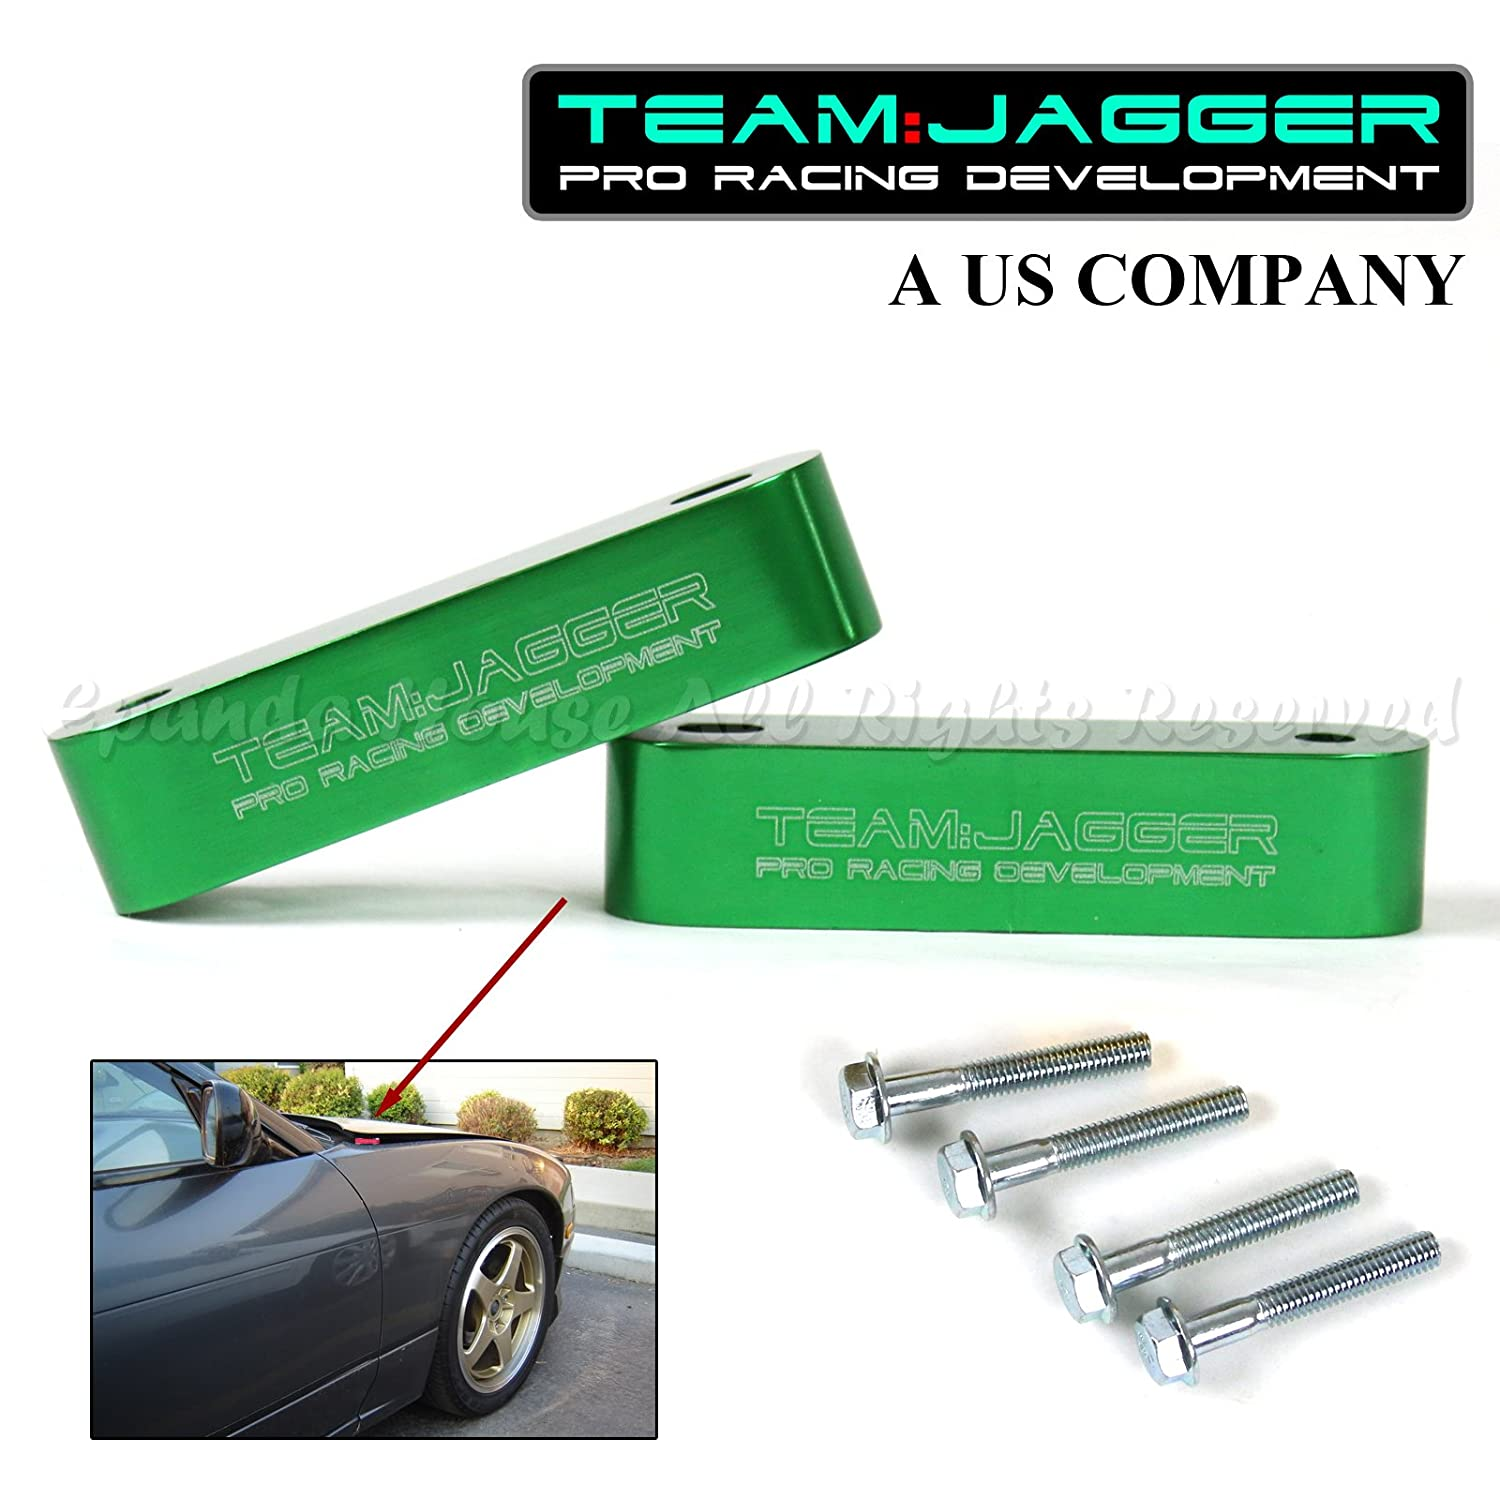 for 90-15 Accord JDM Style Hood Riser Spacer Vent Engine Hot Air Anodized Green EpandaHouse